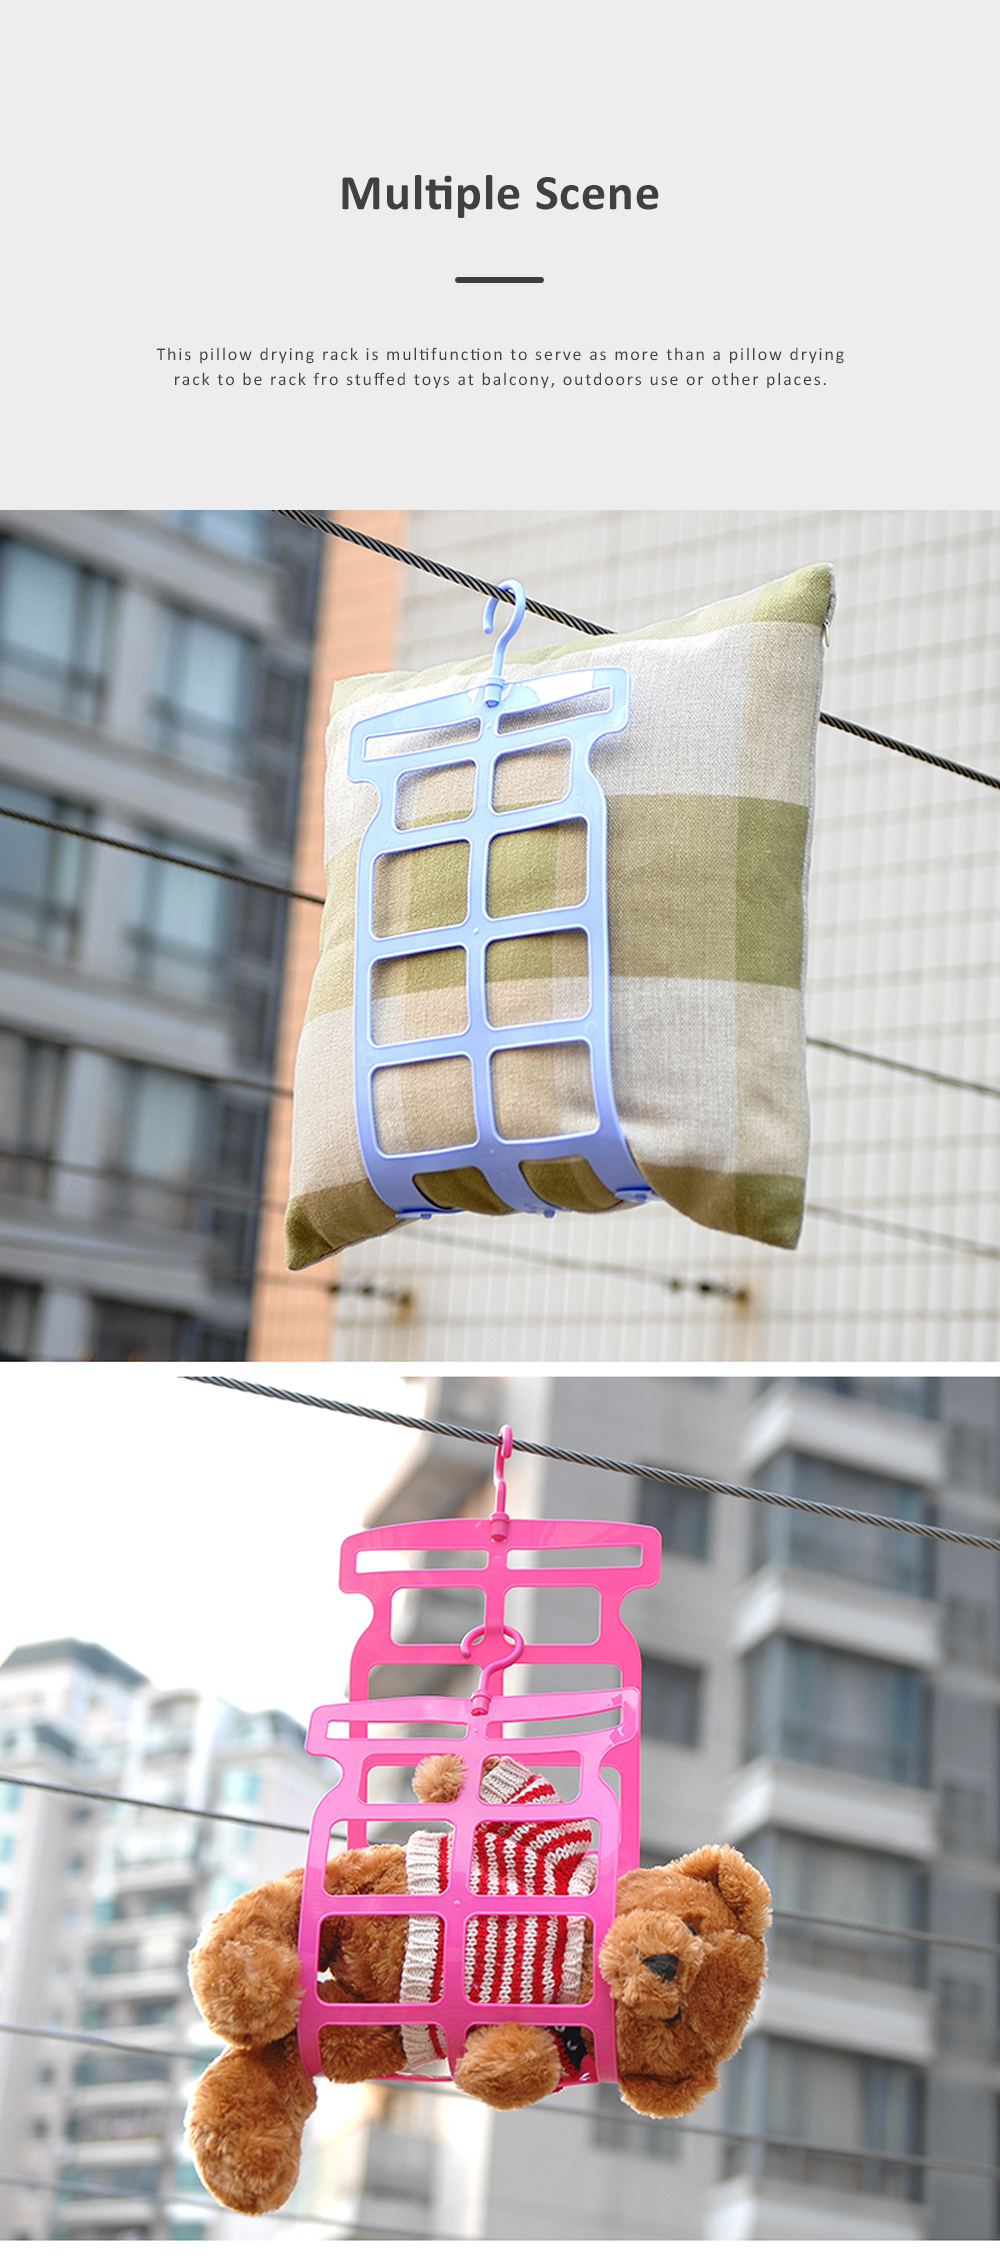 Multifunctional Pillow Drying Clip for Balcony Outdoors Use Stuffed Toys Plastic Laundry Rack Rotatory Hanger Rack 2